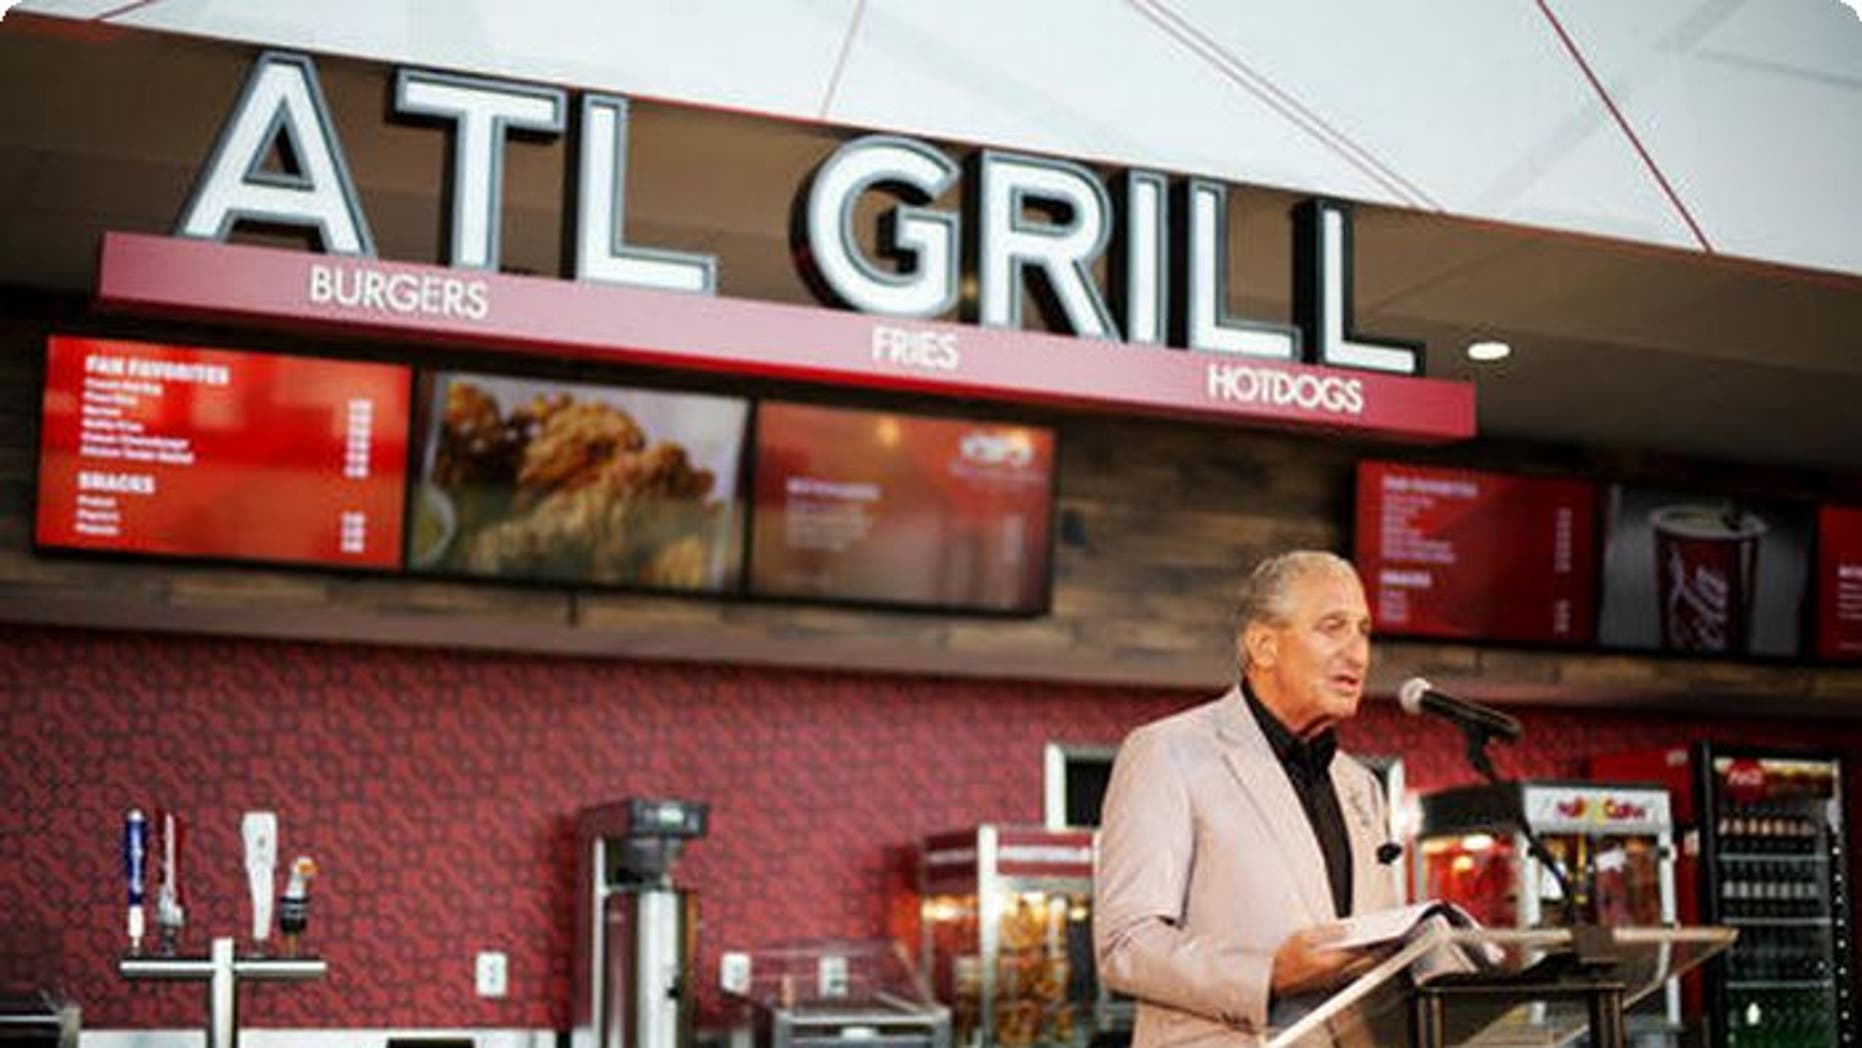 Atlanta Falcons owner Arthur Blank unveils the team's new food and beverage plan at Mercedes-Benz which includes $2 hot dogs and soft drinks, a sharp decrease from current prices at the Georgia Dome.